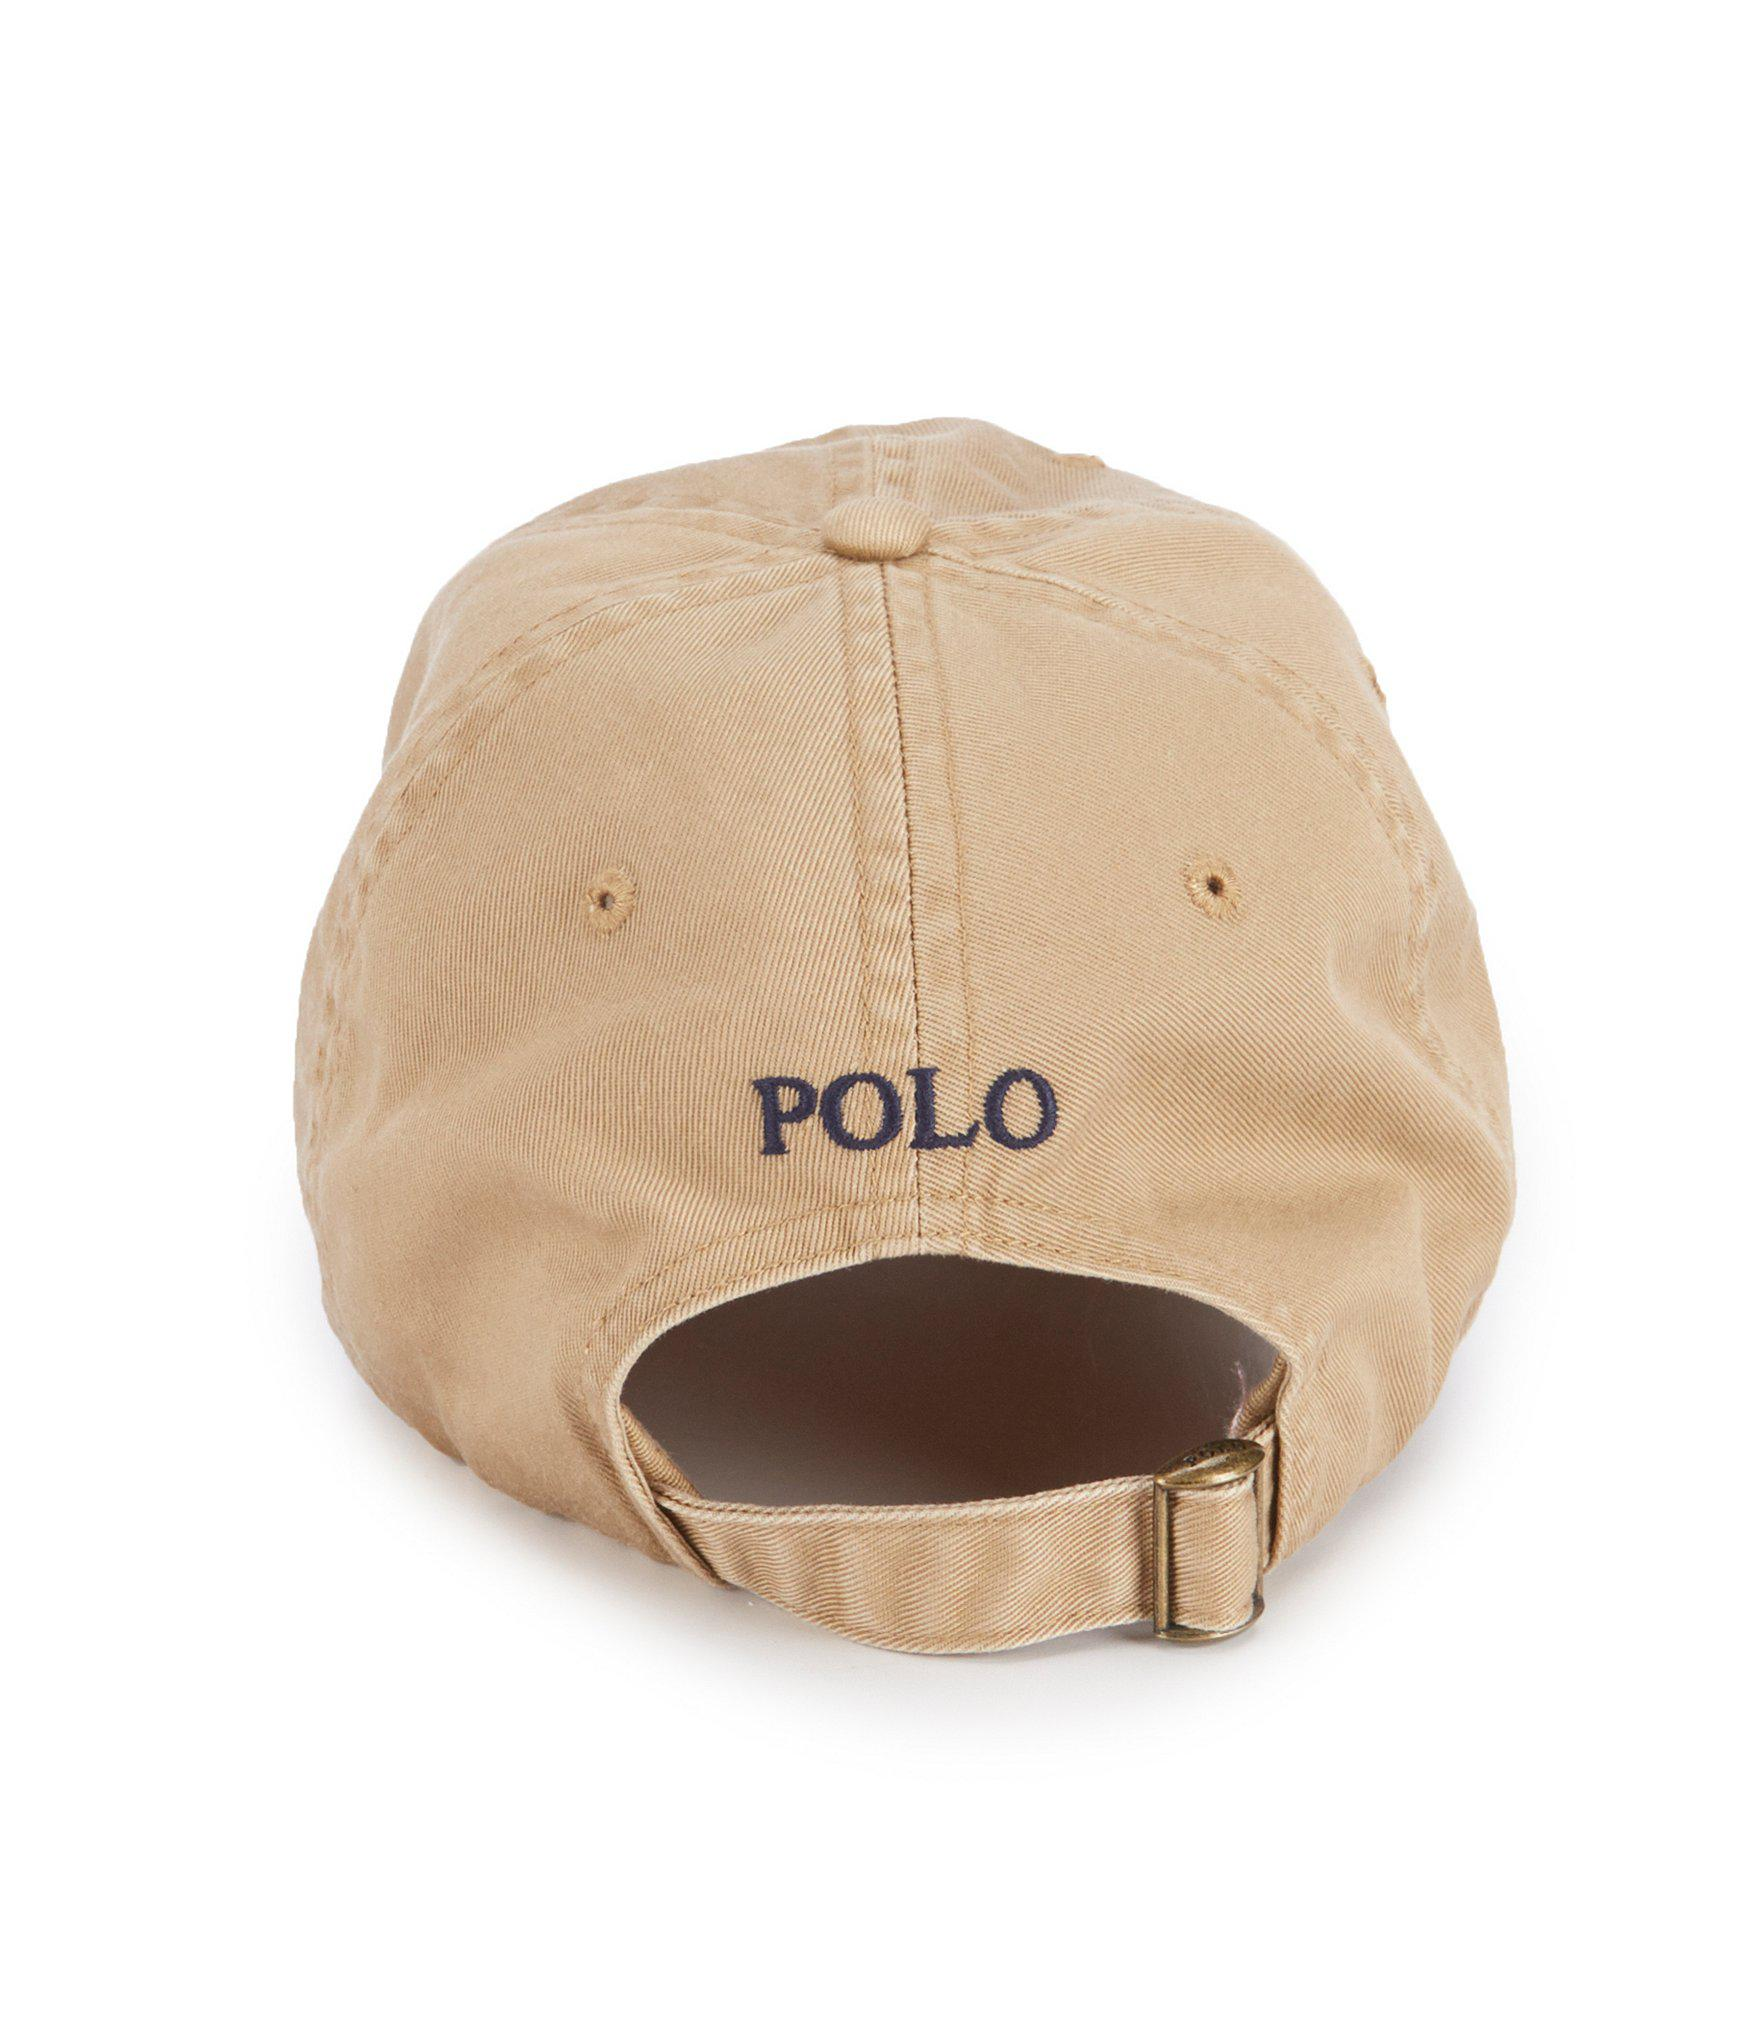 Lyst - Polo Ralph Lauren Skull-and-crossbones Chino Cap in Natural ... 787392ab3fbb